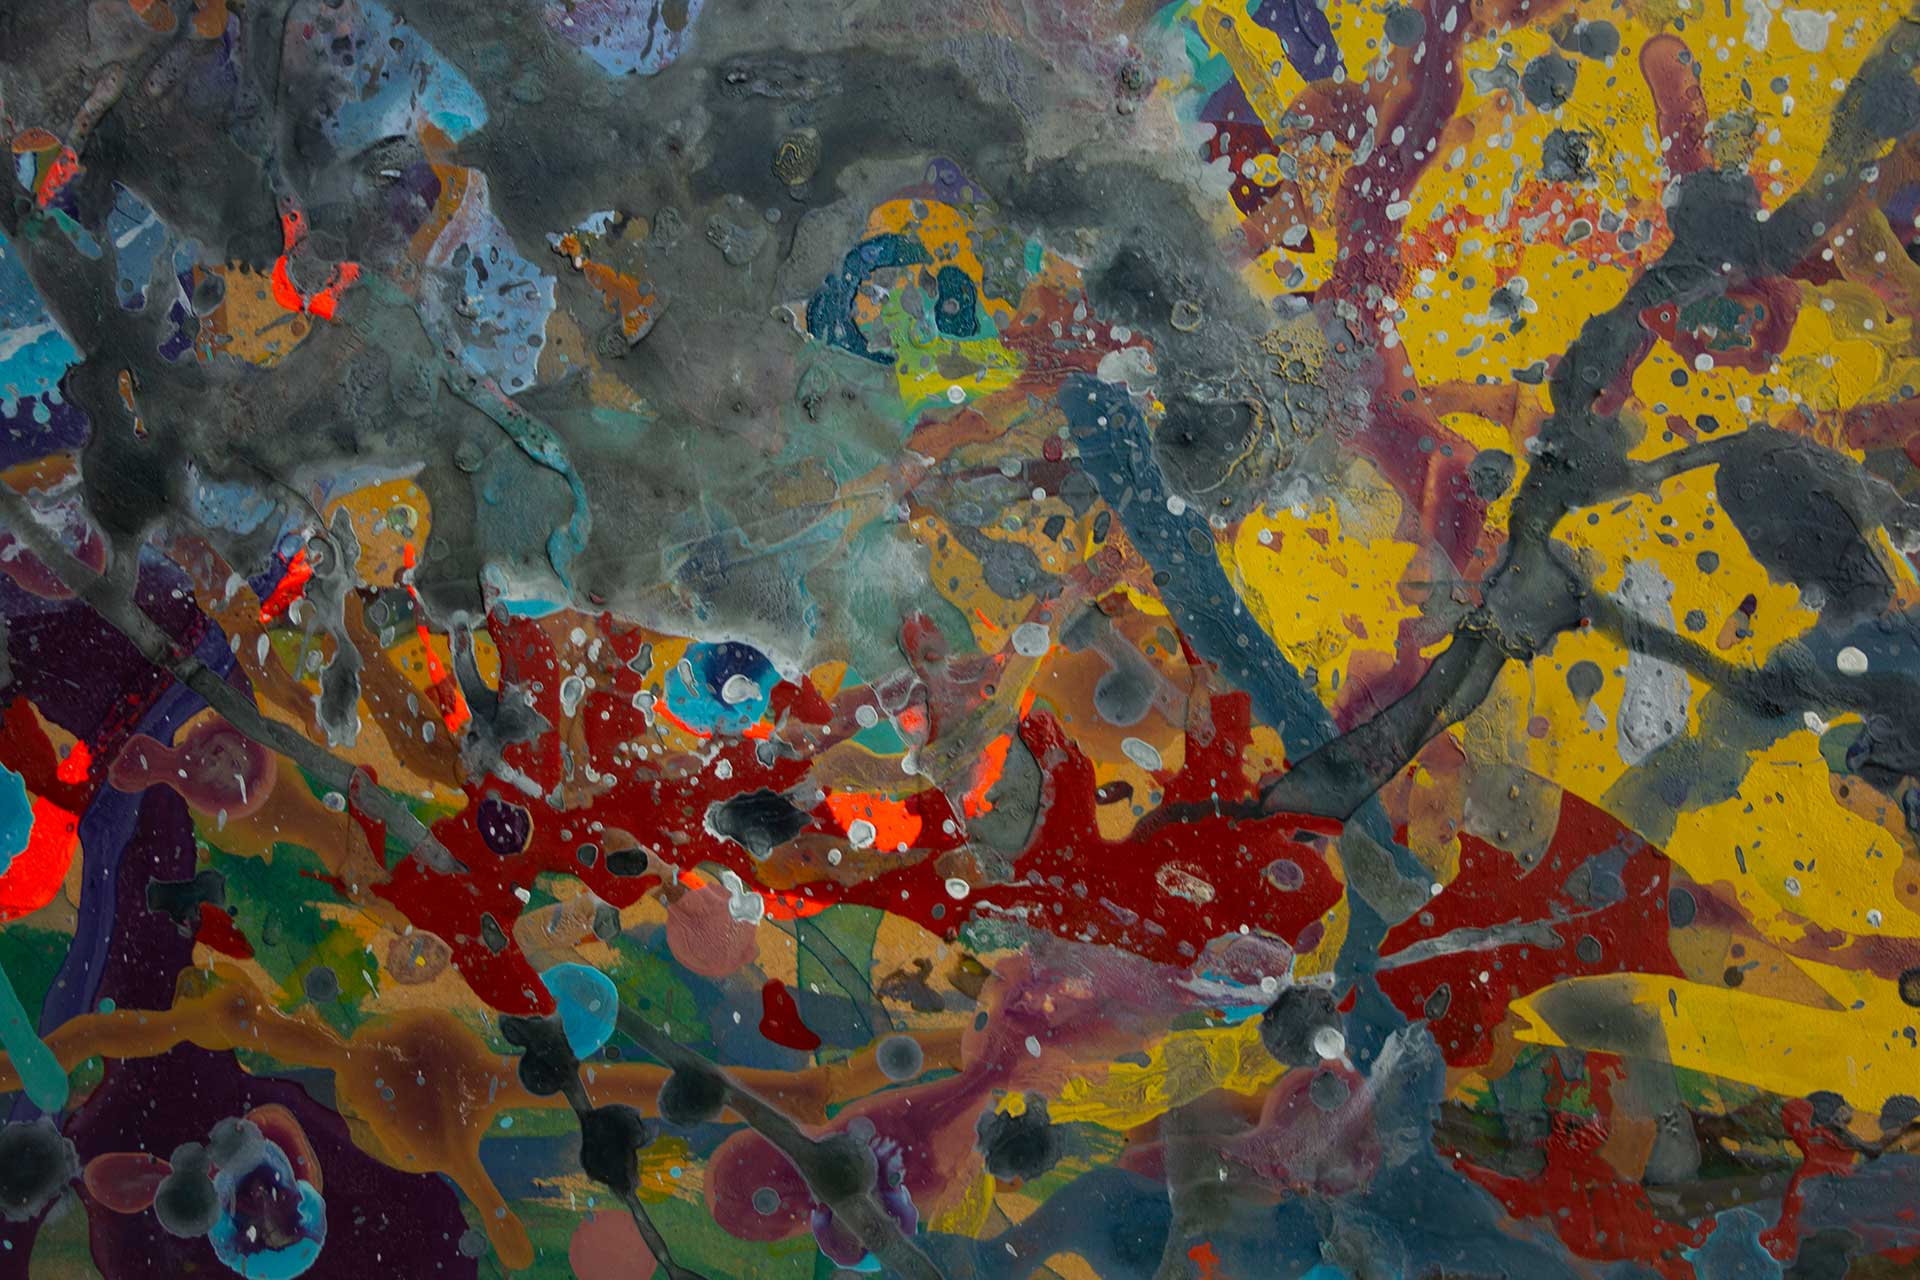 Abstract expressionism painting - Fight of the aliens #1 - Detail 3